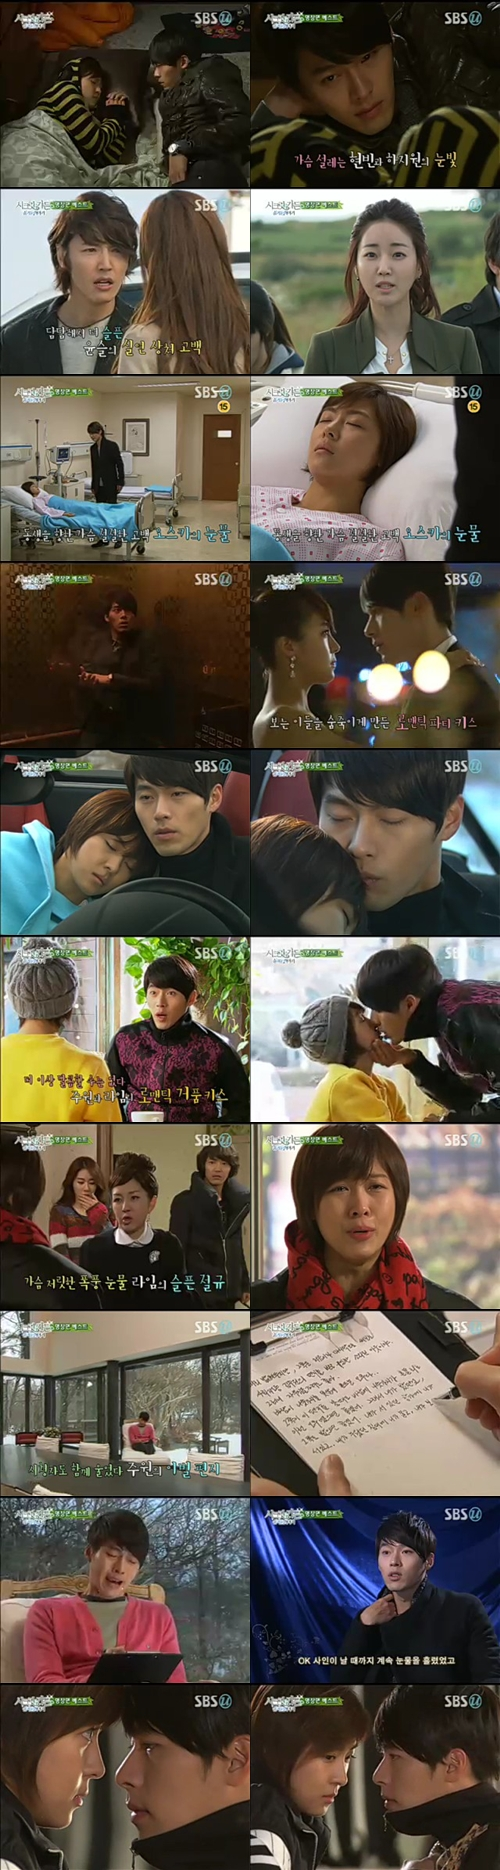 SG Best Scene 4 | thedramascenes.